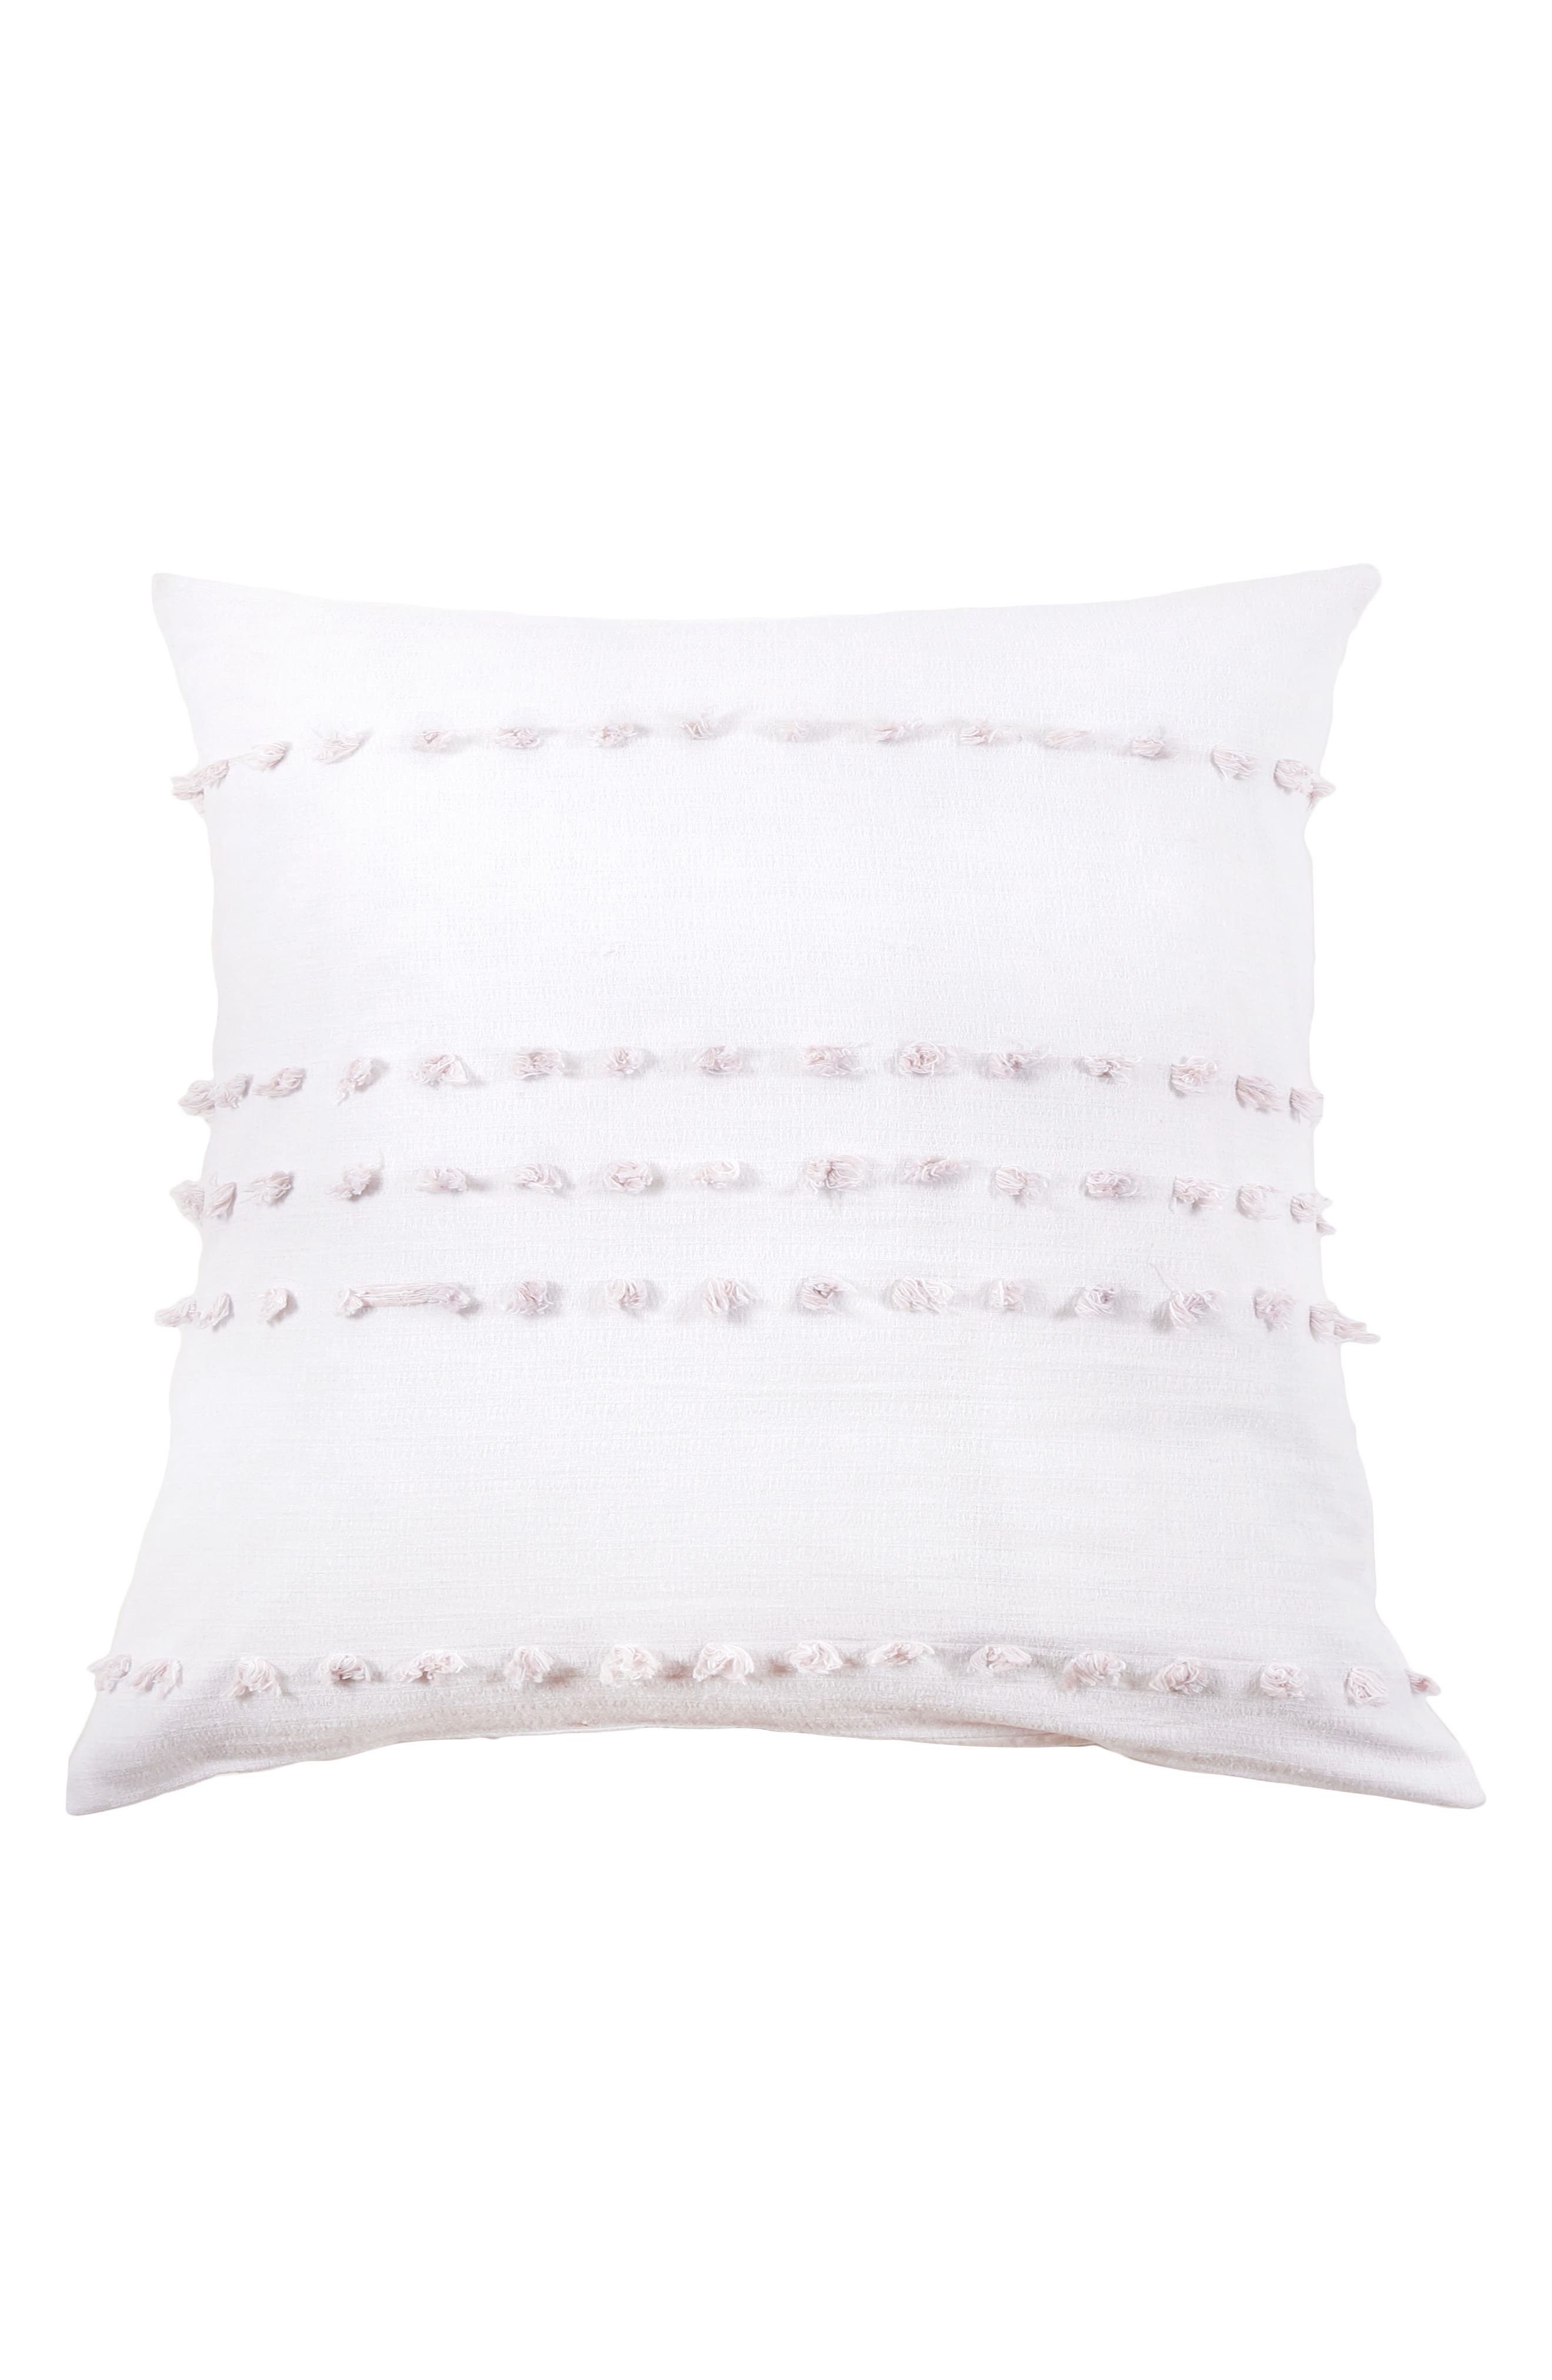 Poppy Accent Pillow,                         Main,                         color, WHITE/ BLUSH